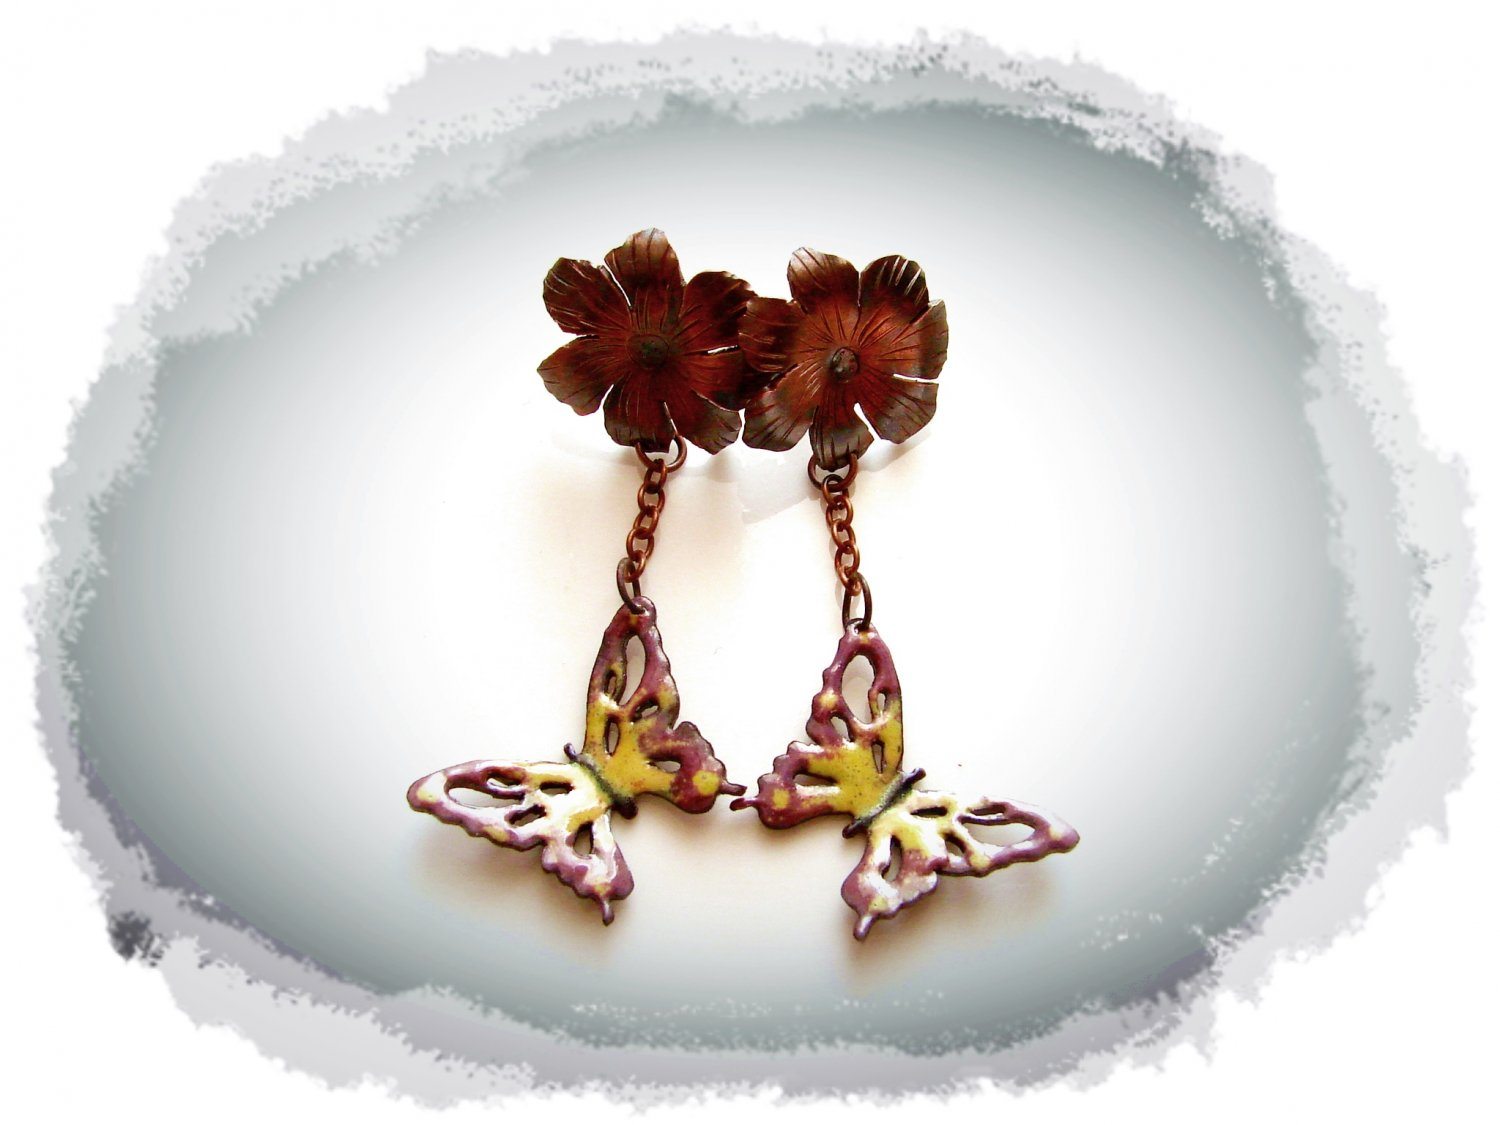 Copper earrings with flowers and butterflies